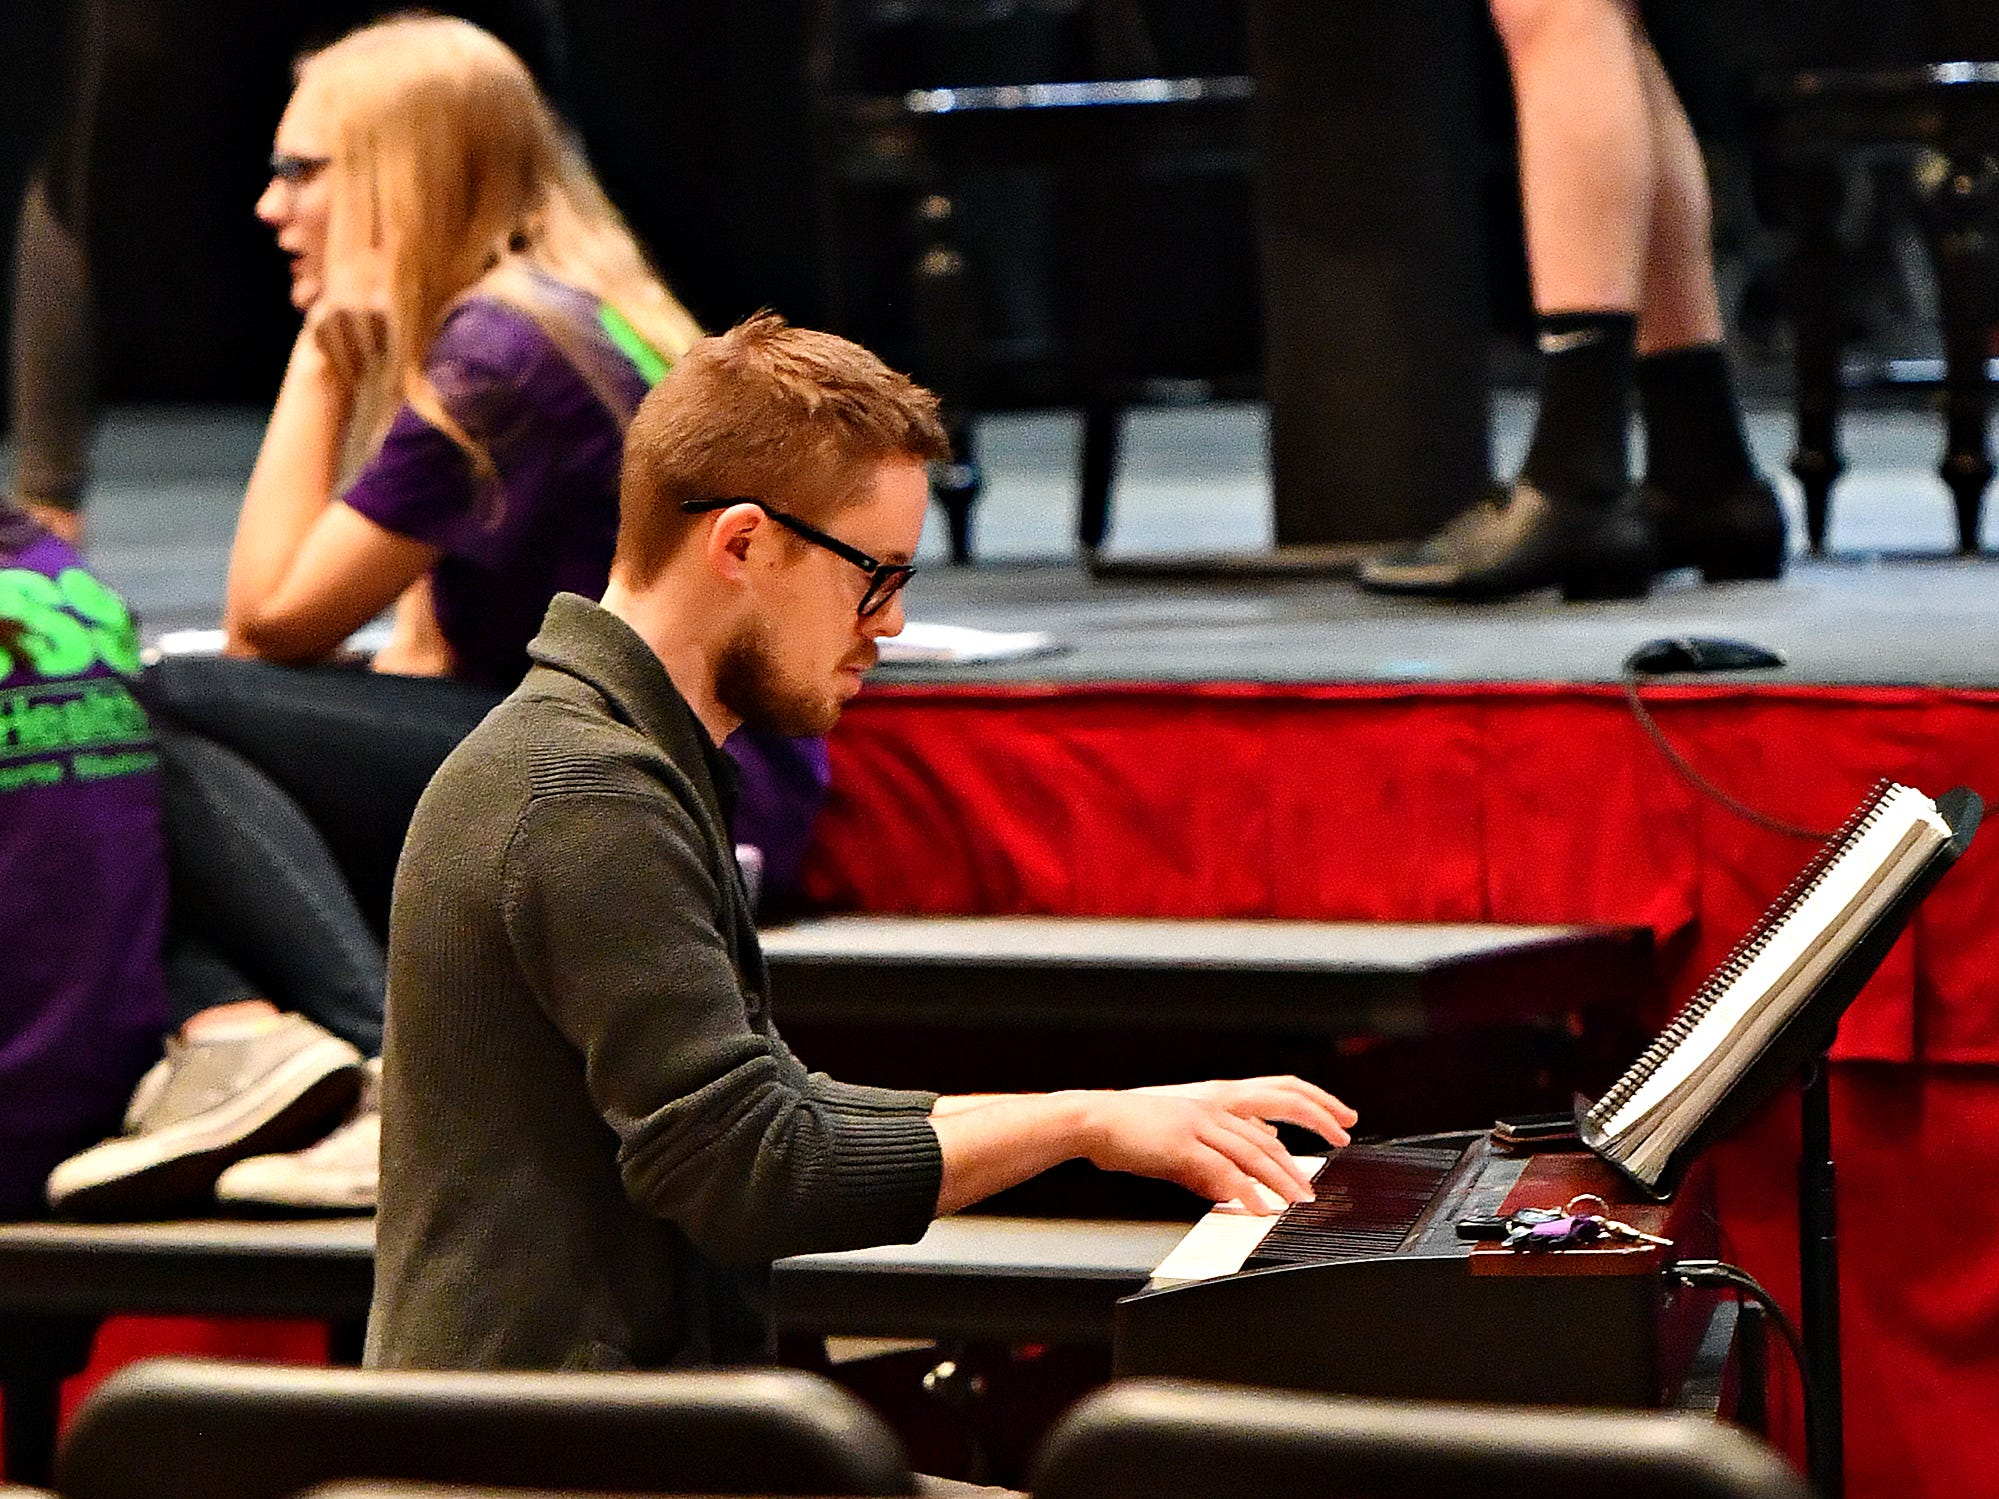 """Musical accompanist Matt Schriver plays keyboard while Central York High School students rehearse for their upcoming production of, """"Catch Me If You Can,"""" at Central York High School in Springettsbury Township, Wednesday, Feb. 6, 2019. Central York is the first York area school to perform the production Feb. 15-17. Dawn J. Sagert photo"""